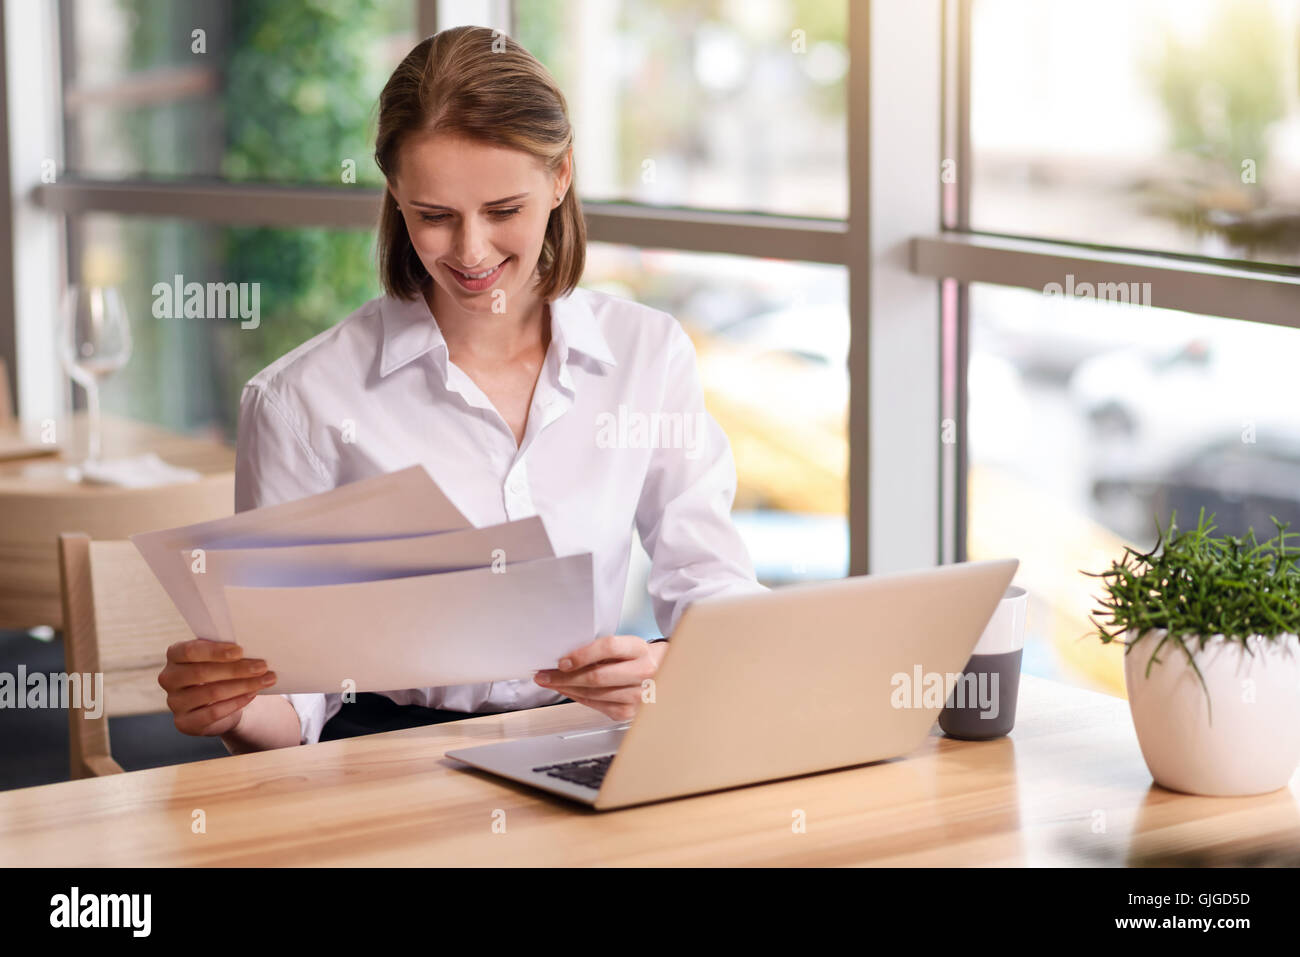 Cheerful woman working with papers - Stock Image